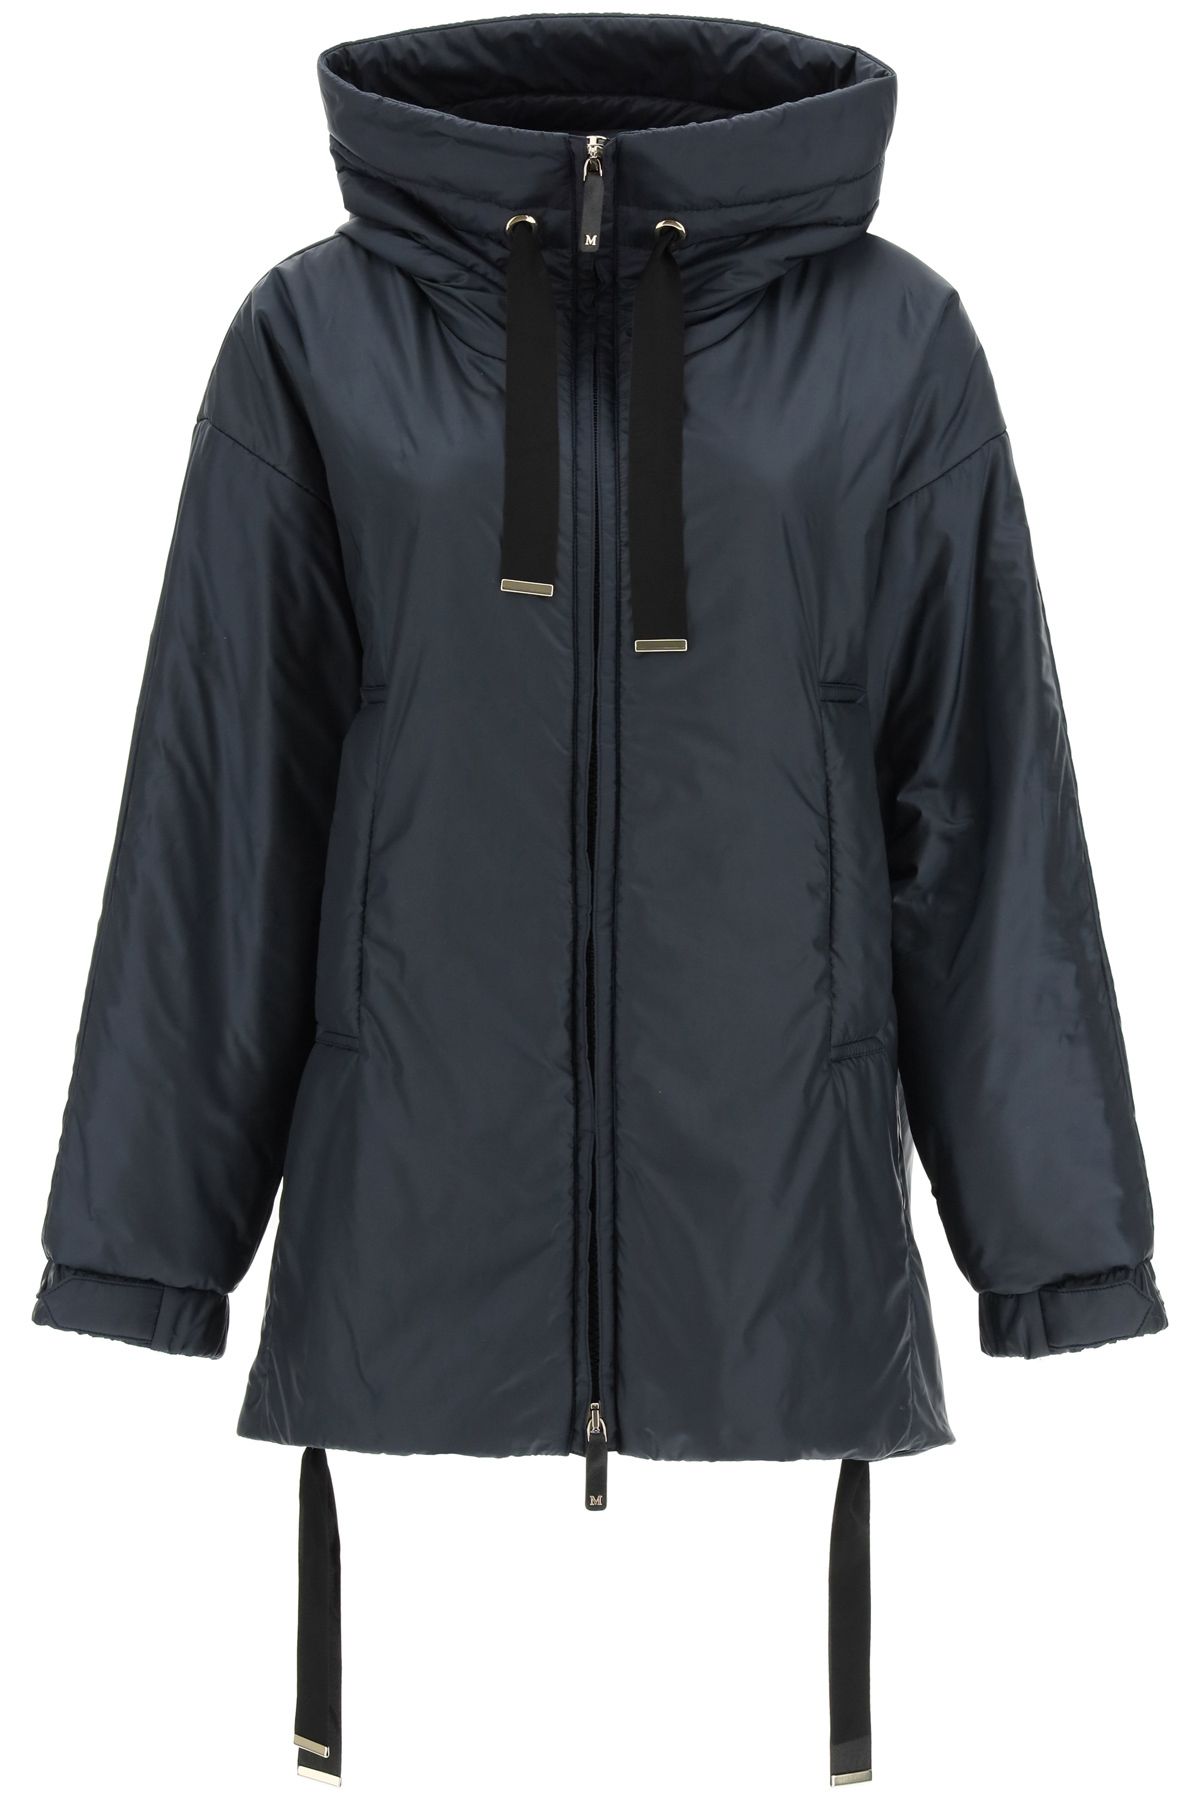 Max Mara The Cube GREENFE HOODED JACKET